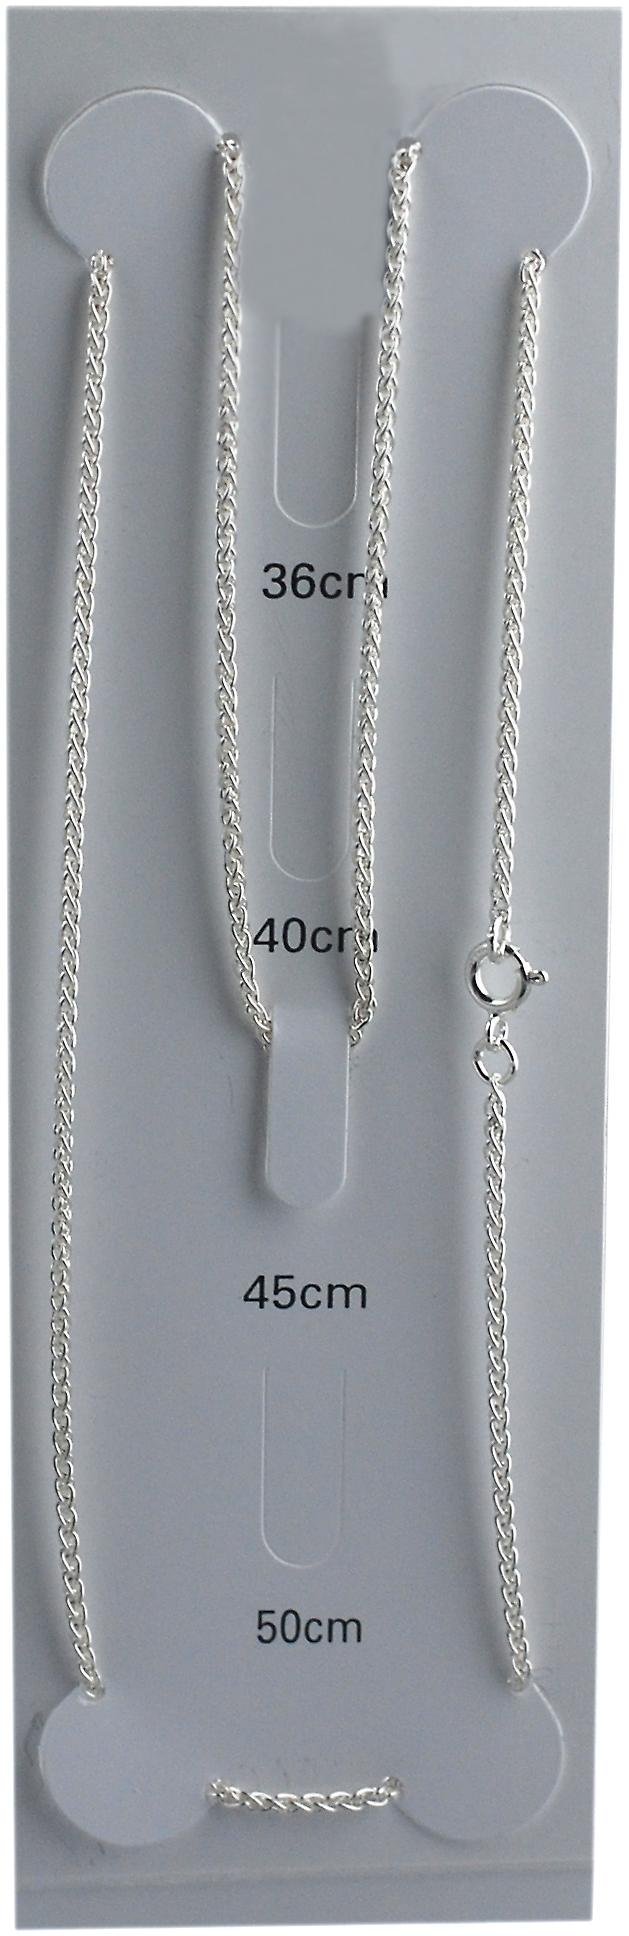 Silver 1.6mm wide Spiga Pendant Chain 18 inches